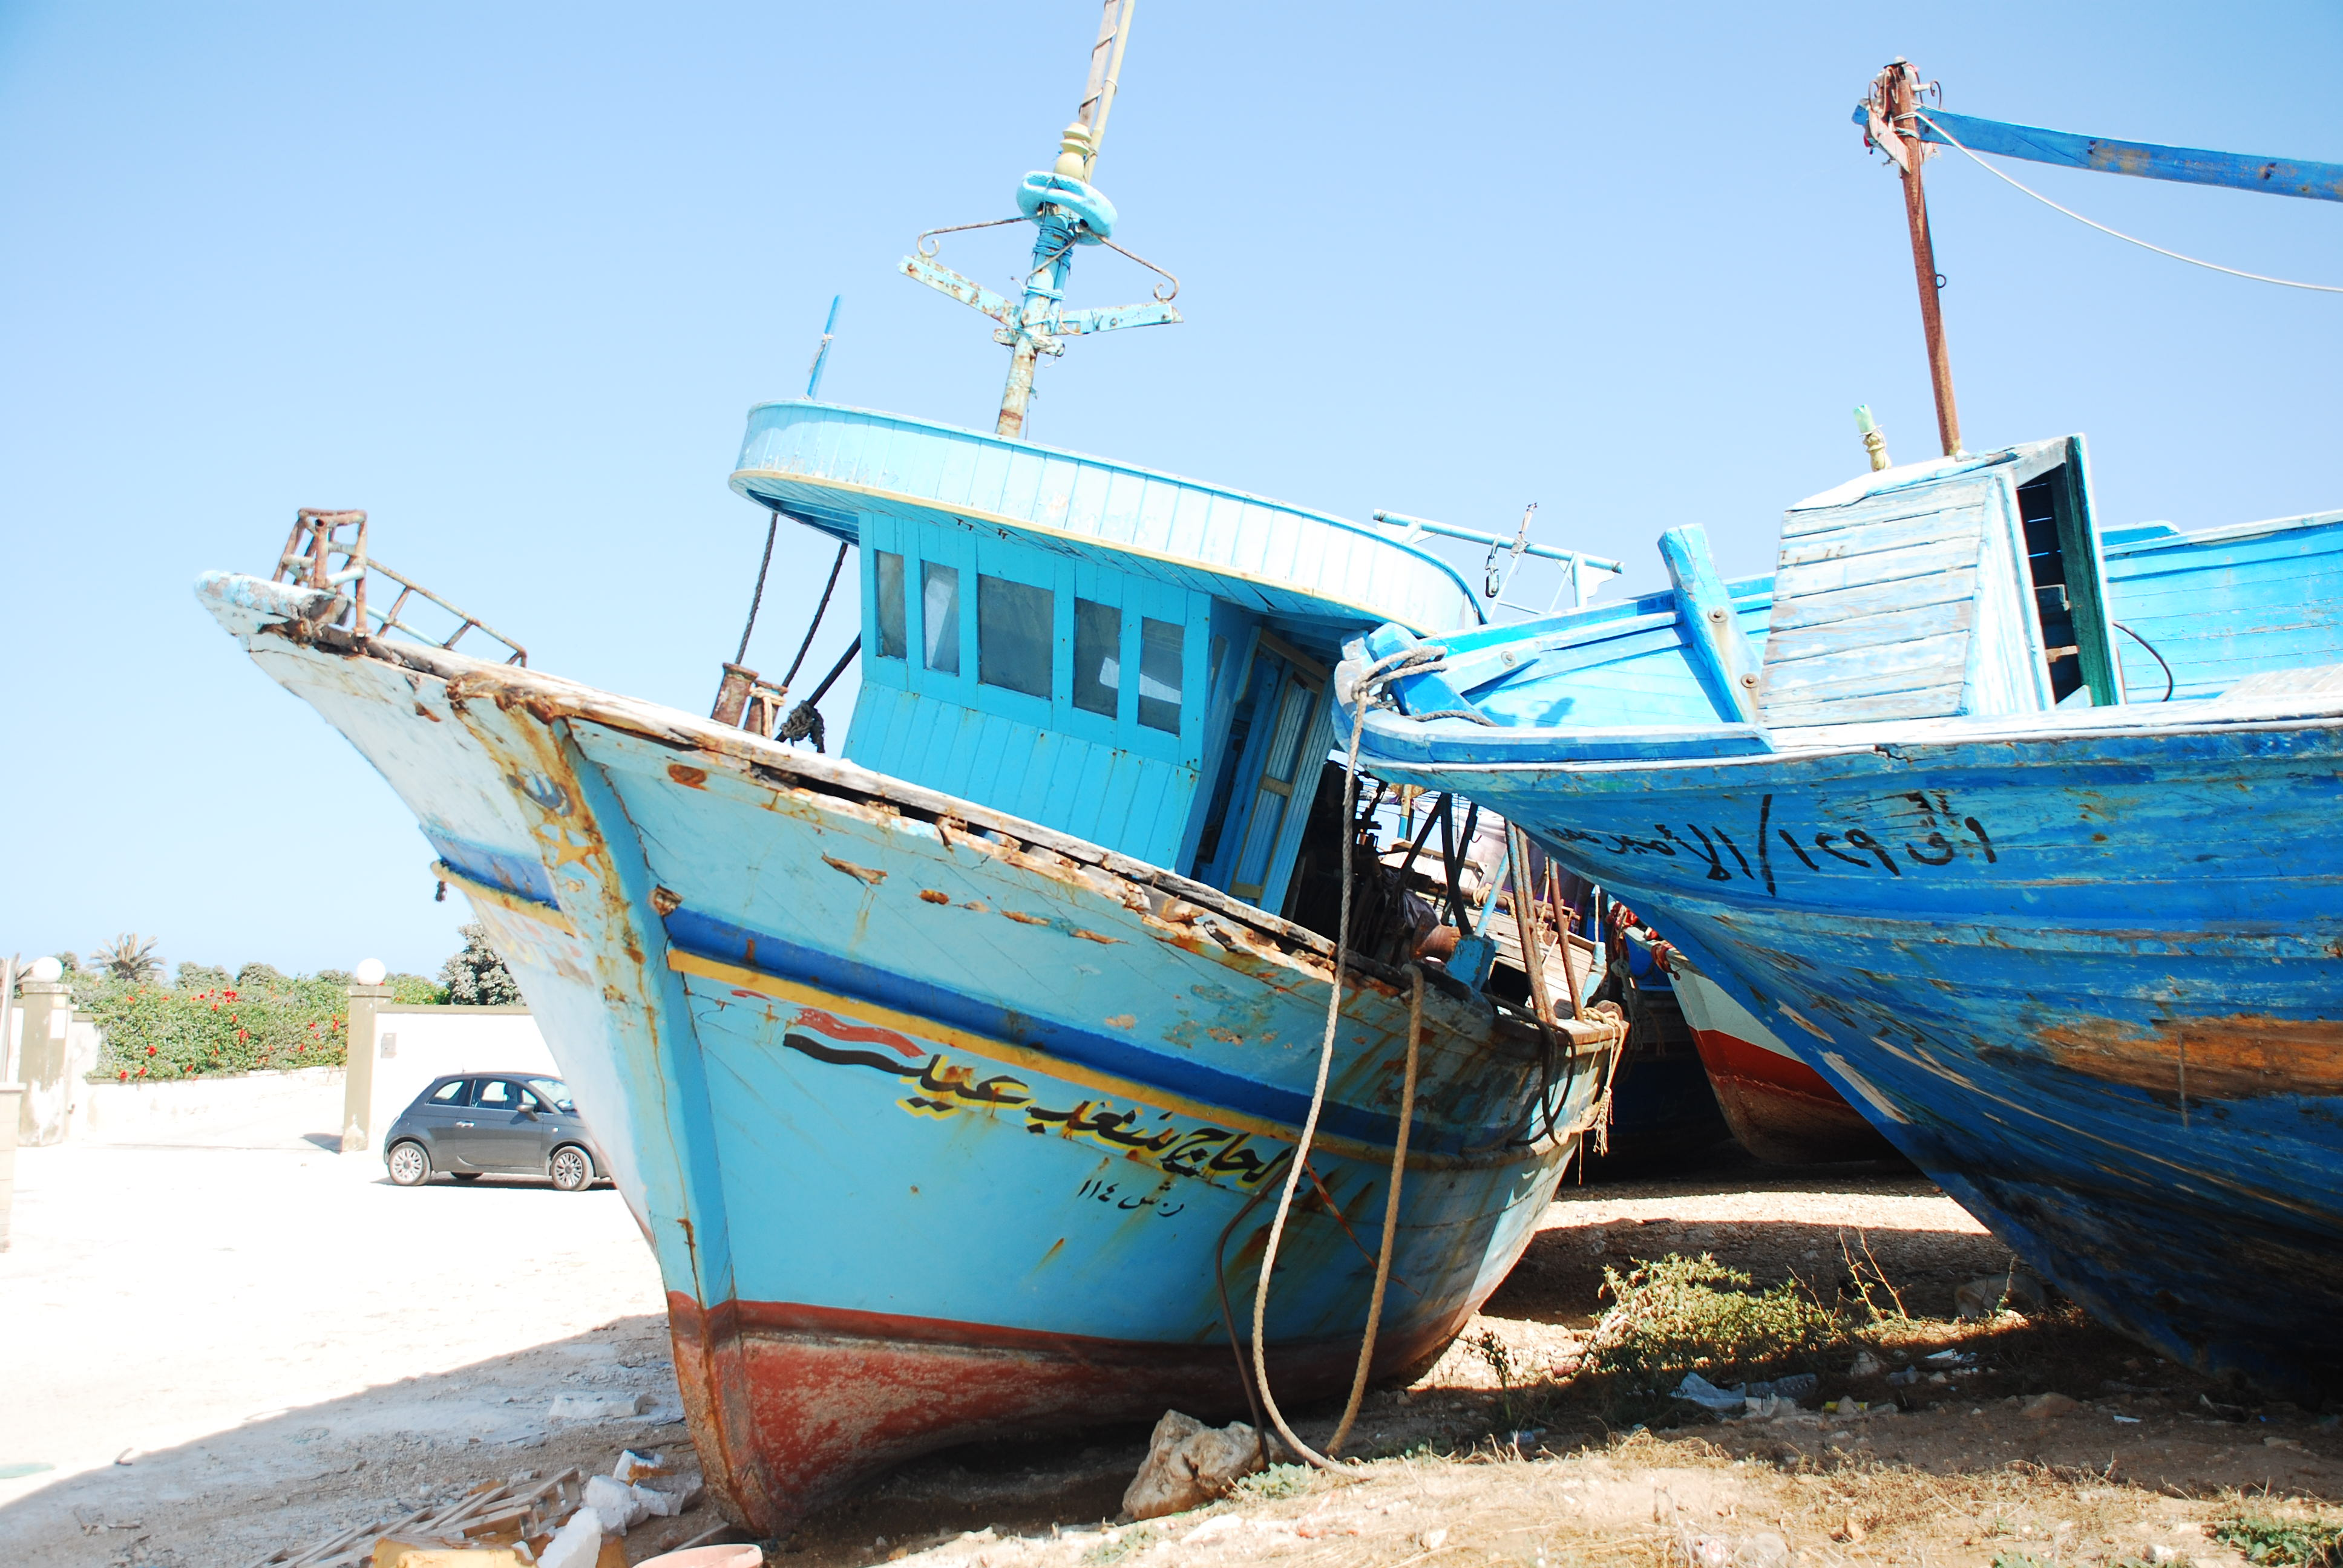 Sicily's Refugees' Boats Graveyard – Stanito